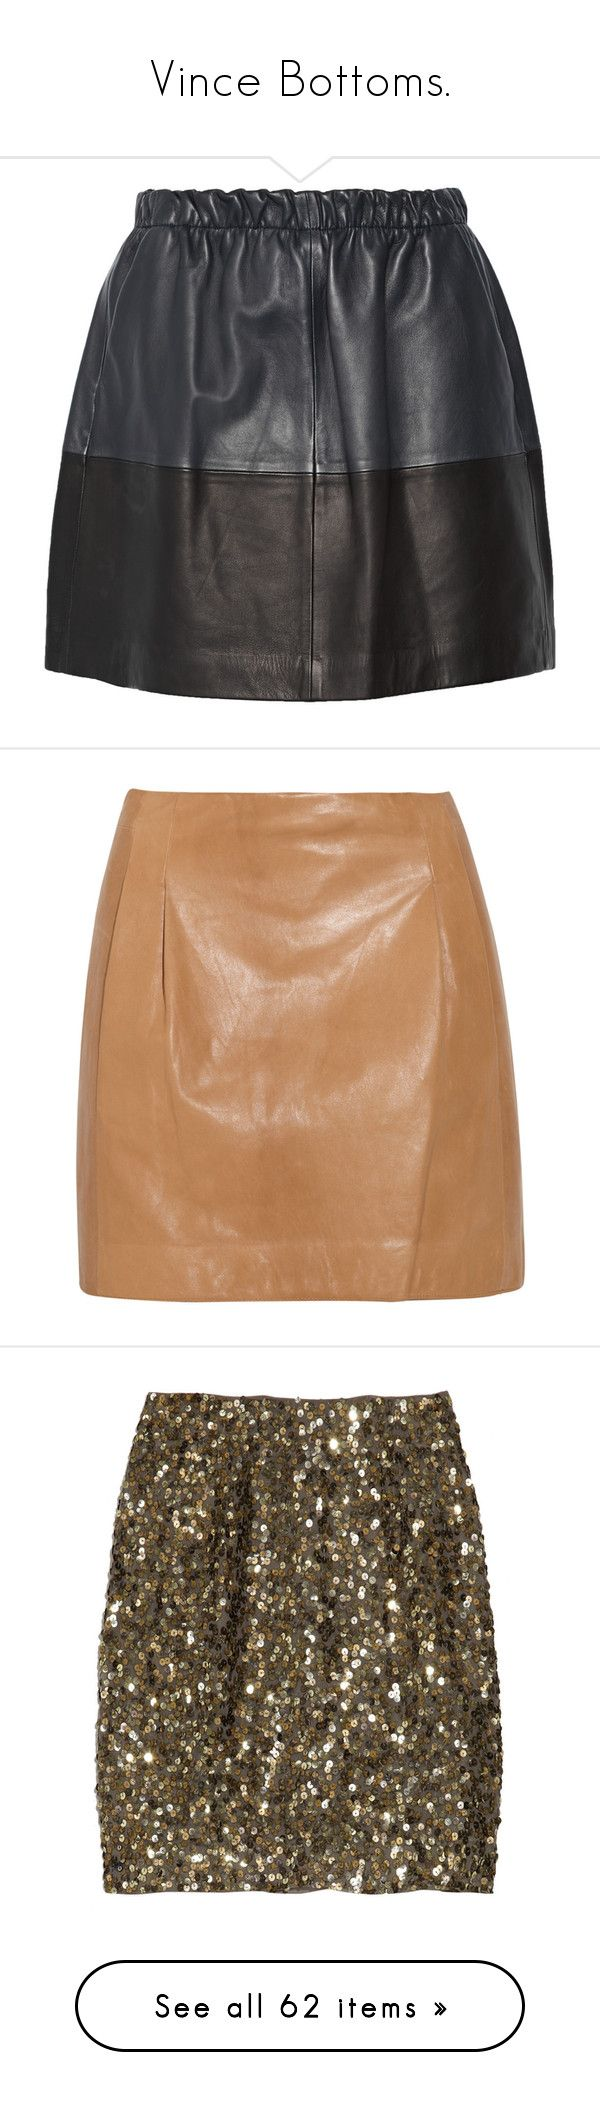 """Vince Bottoms."" by that-drumming-noise ❤ liked on Polyvore featuring skirts, mini skirts, storm blue, leather skirt, real leather skirt, genuine leather skirt, leather mini skirt, leather miniskirt, bottoms and saias"